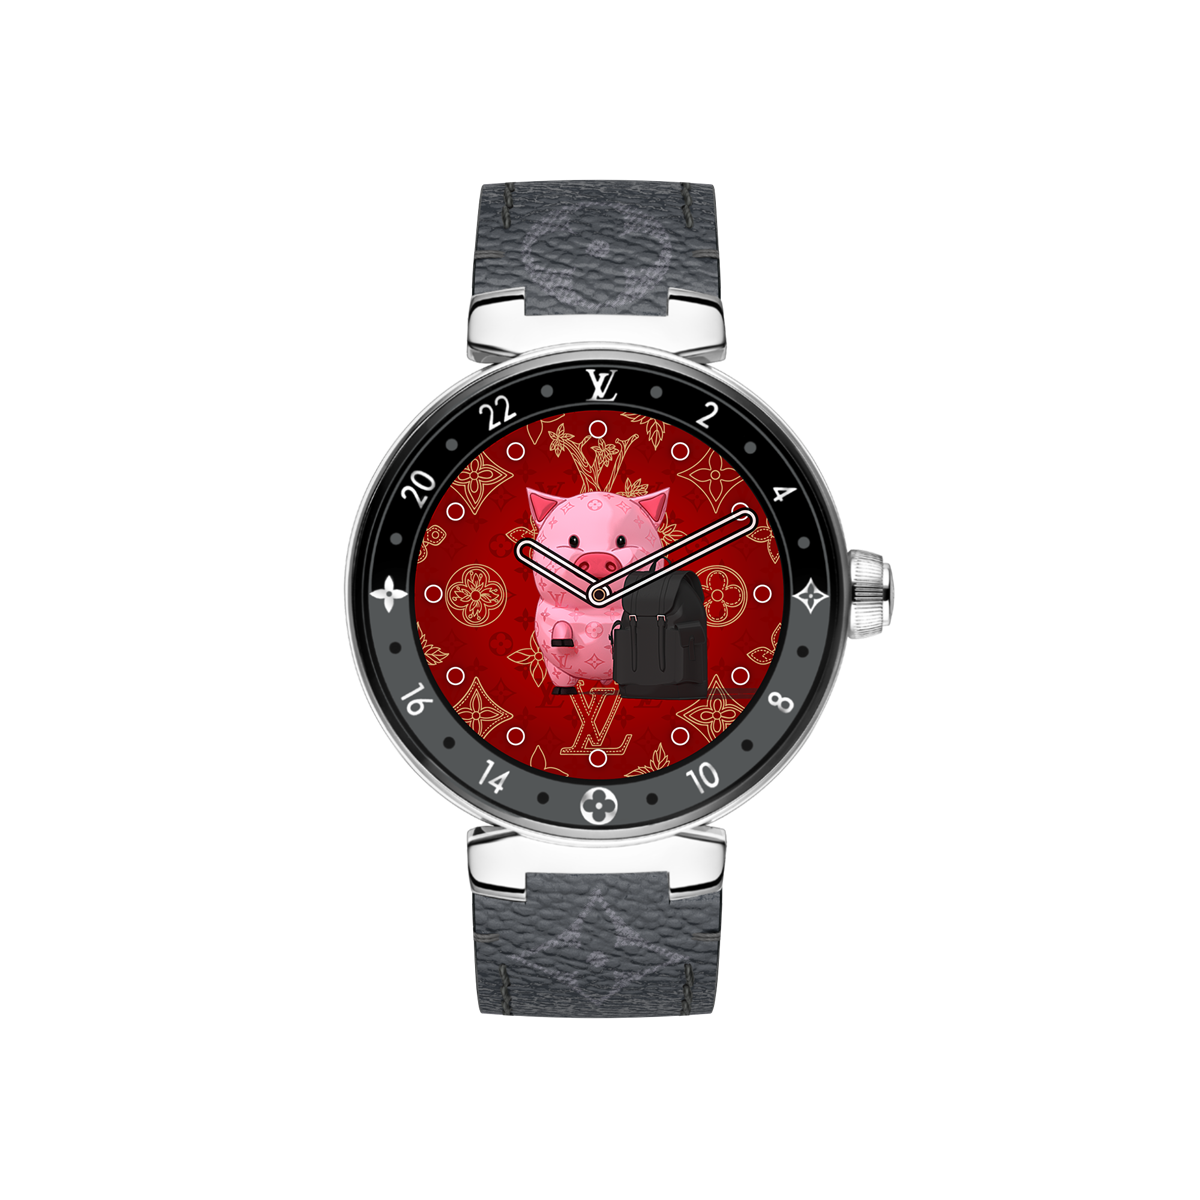 03_LV_Watches_Tambour Horizon_Chinese New Year 2020 Edition